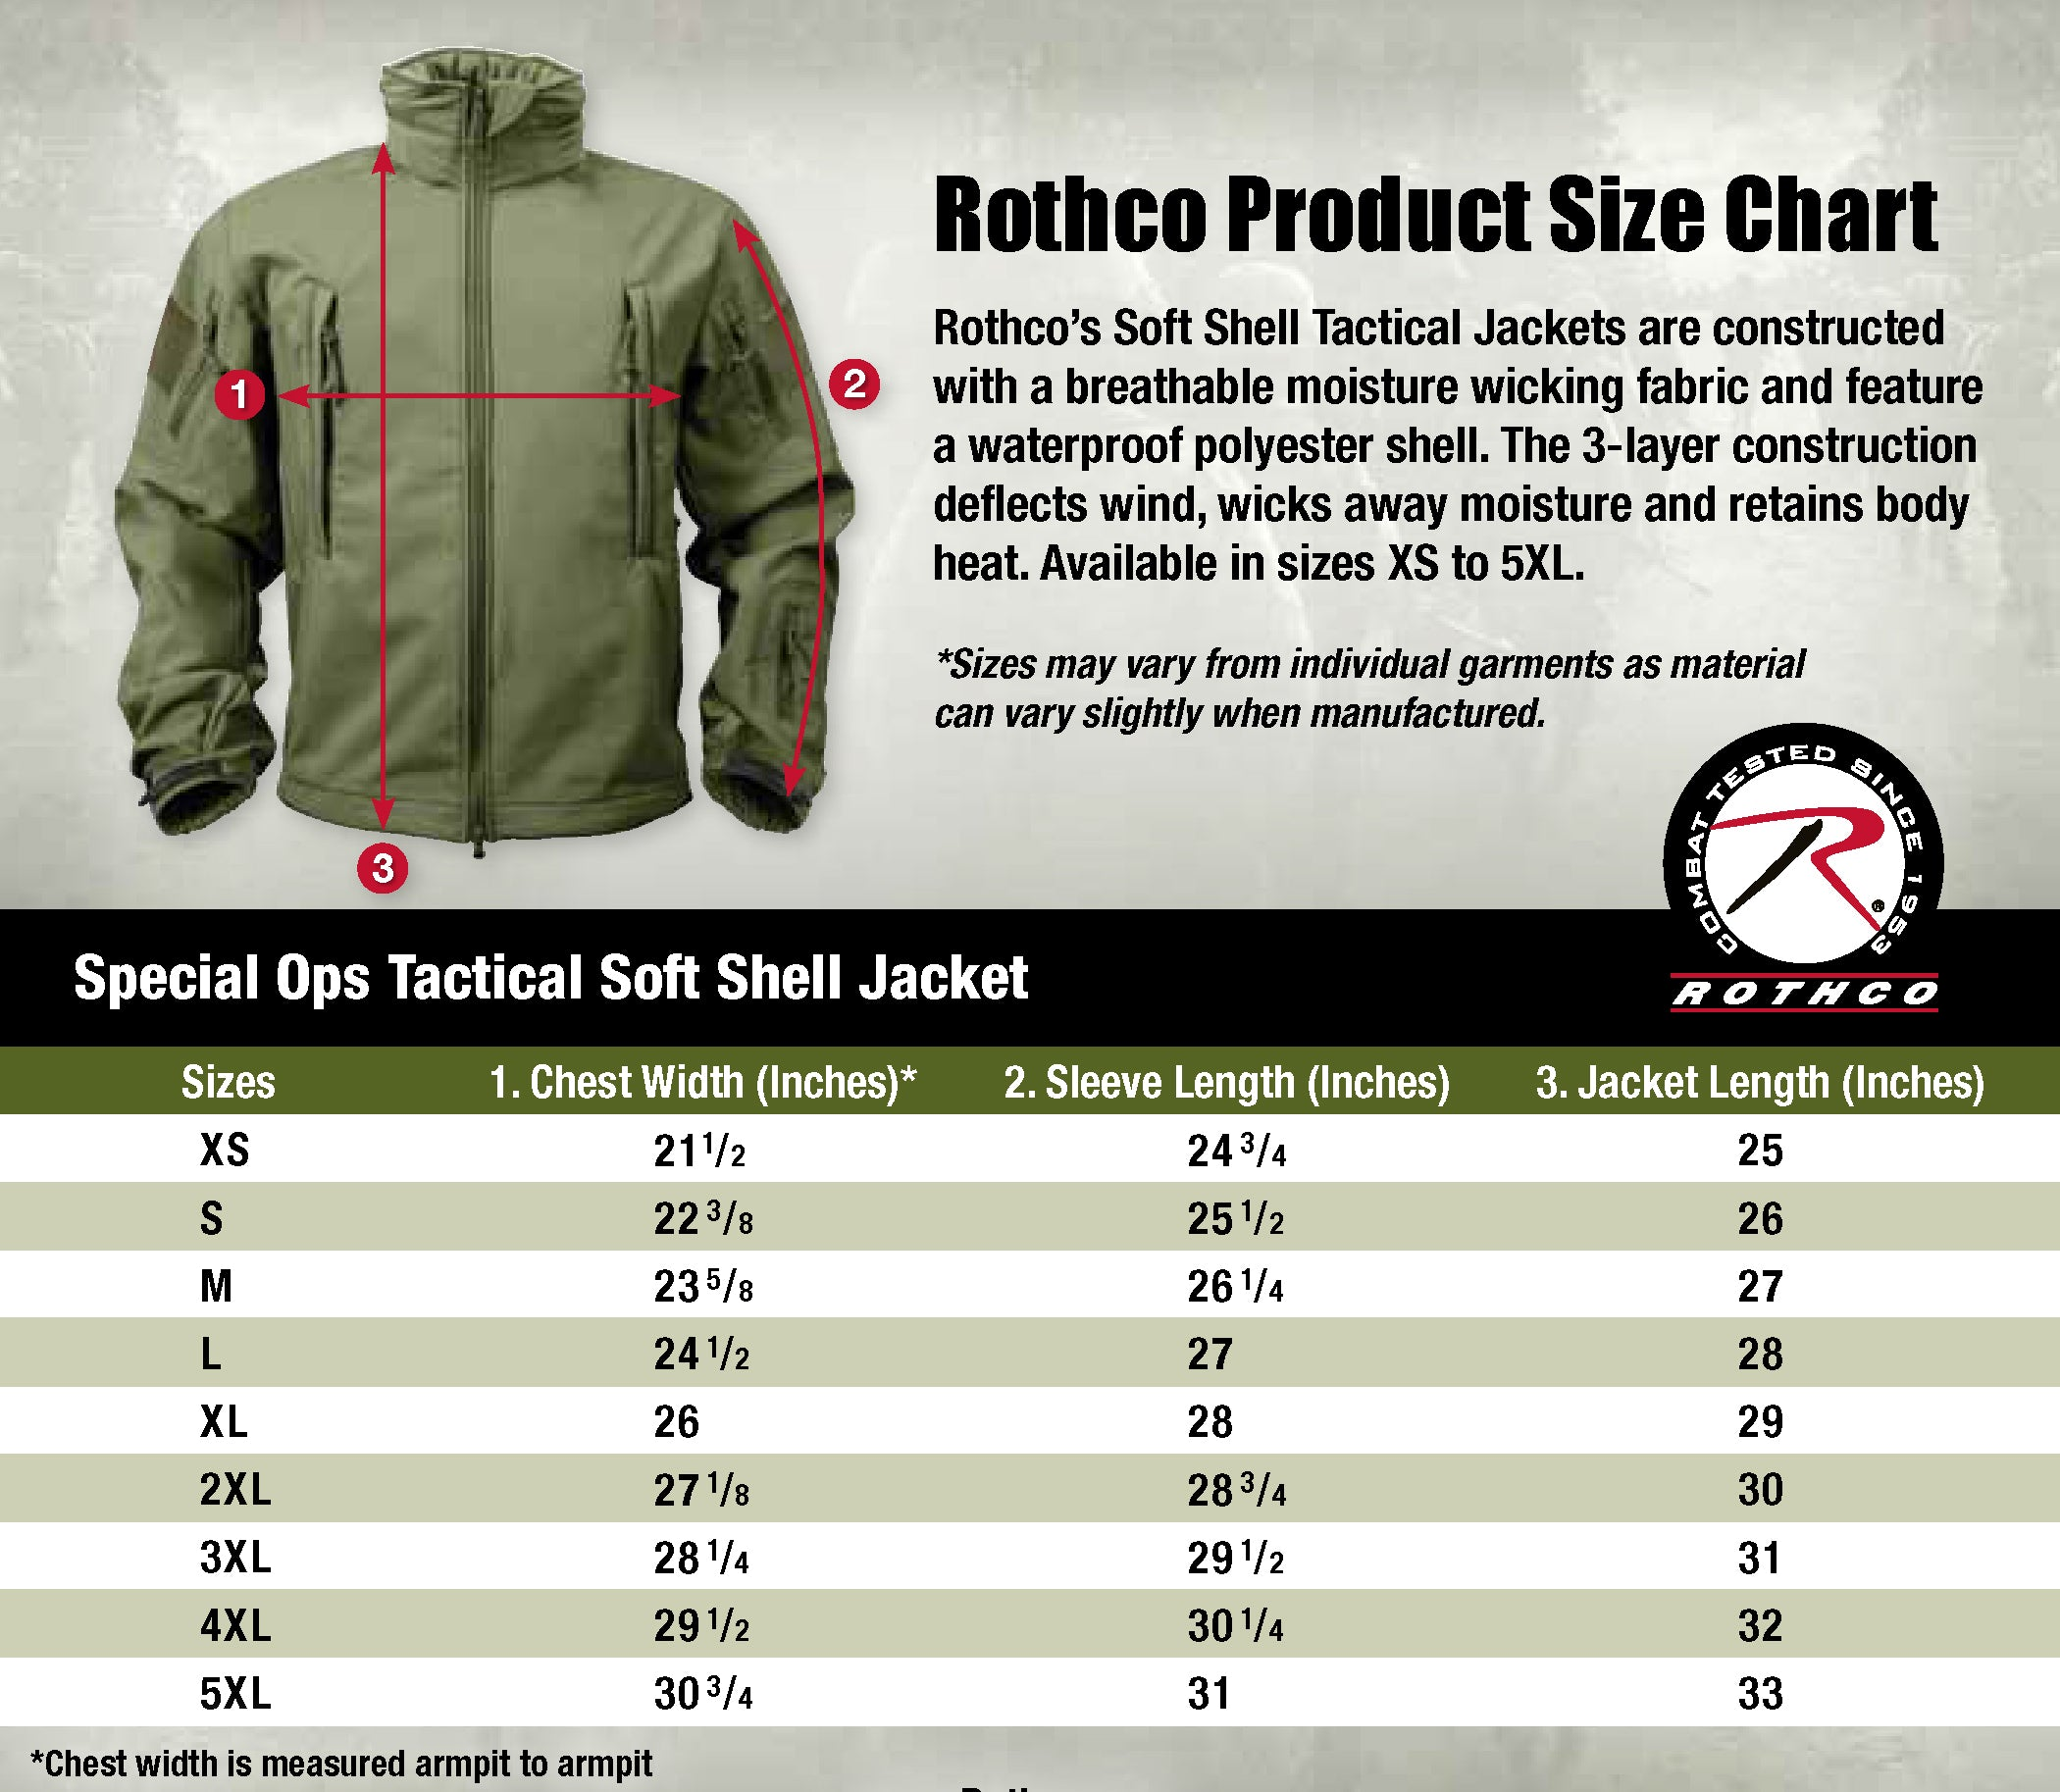 soft shell jacket rothco size chart